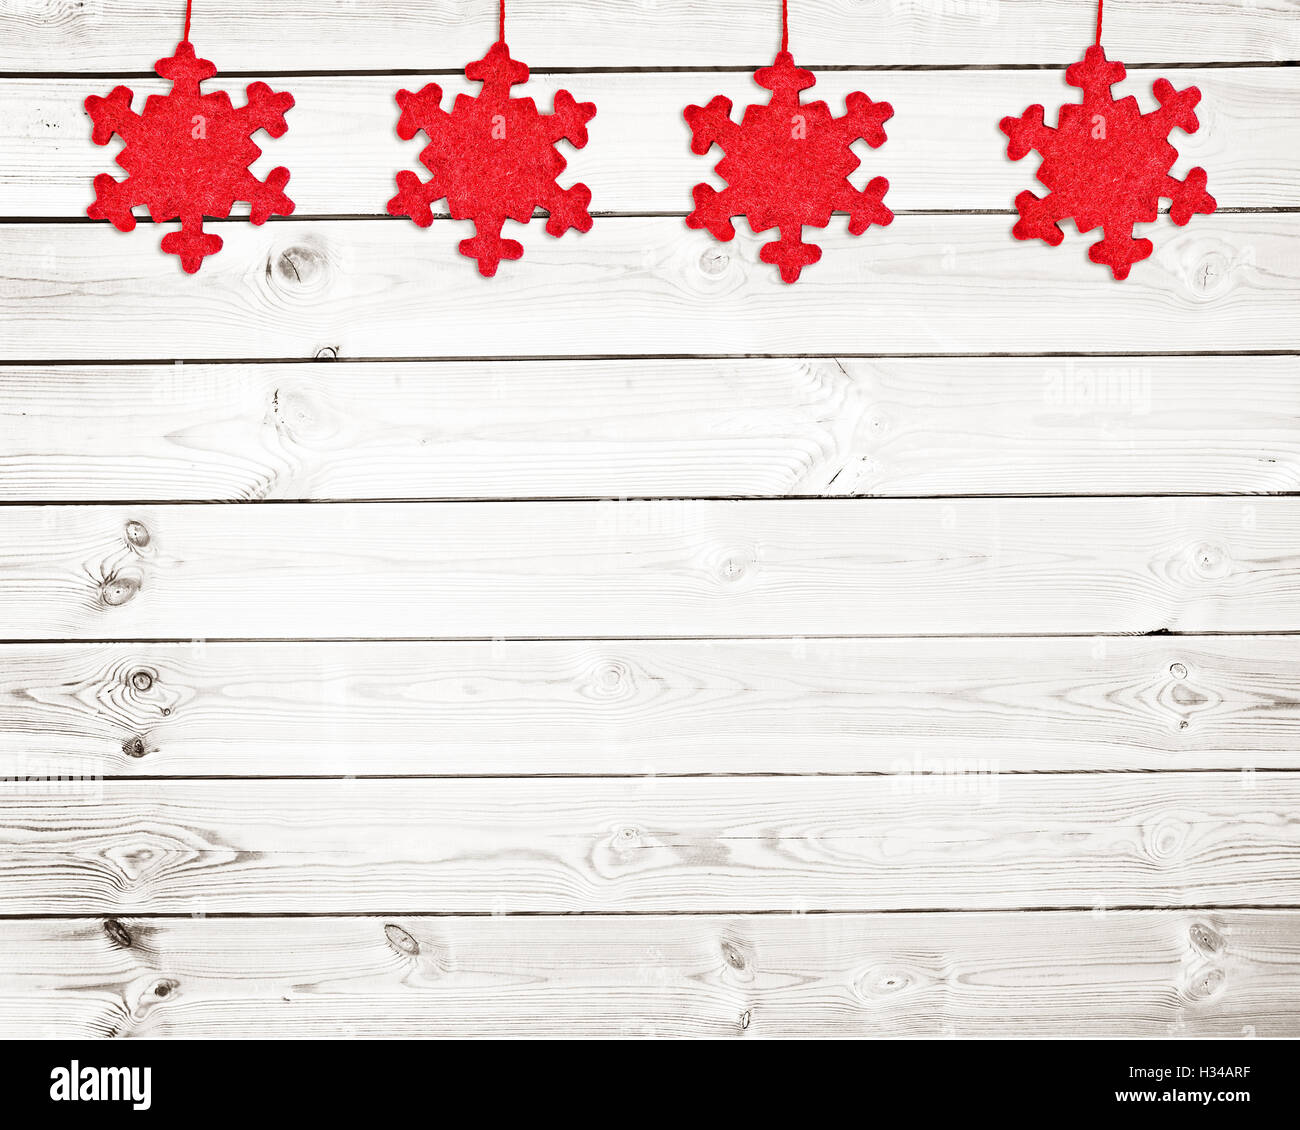 Red fabric Christmas ornaments on white wooden planks background - Stock Image